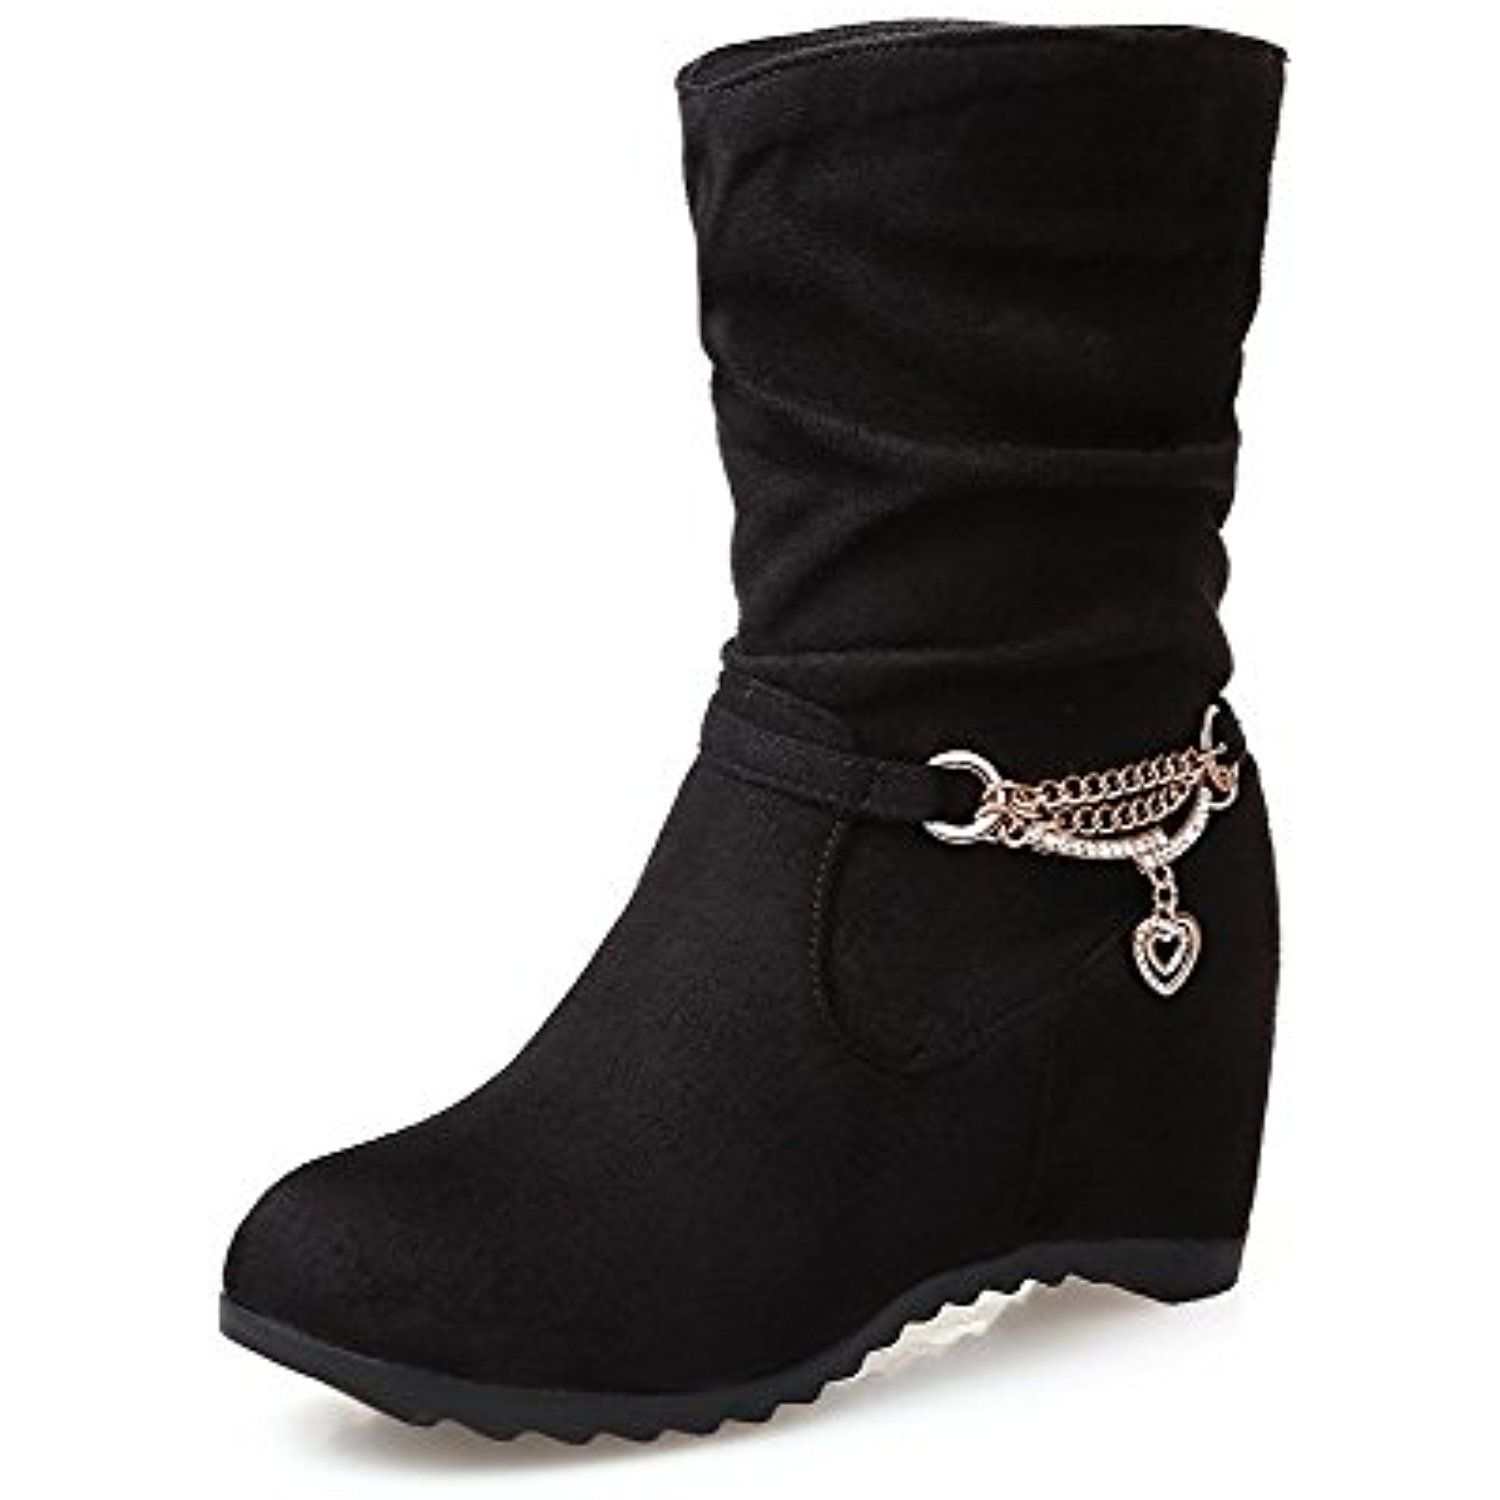 Women's Imitated Suede Low-top Solid Pull-on High Heels Boots